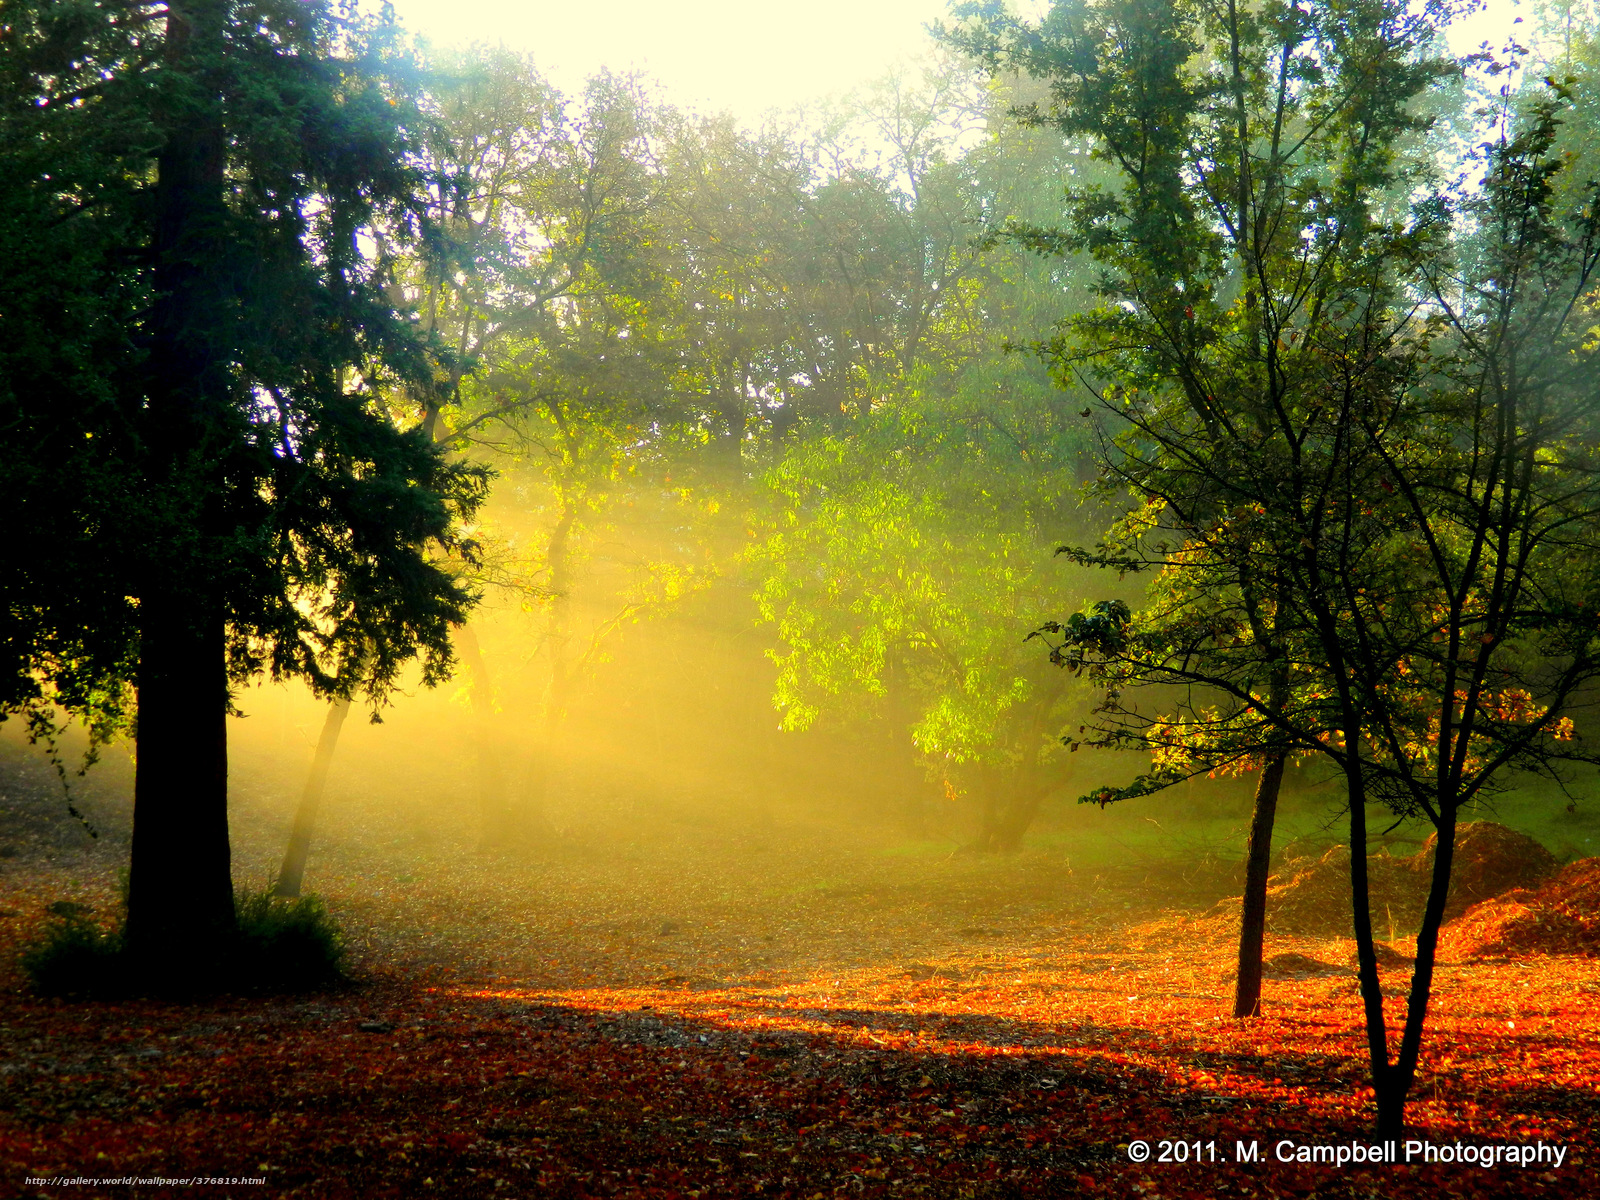 Download wallpaper morning dawn forest sun free desktop wallpaper